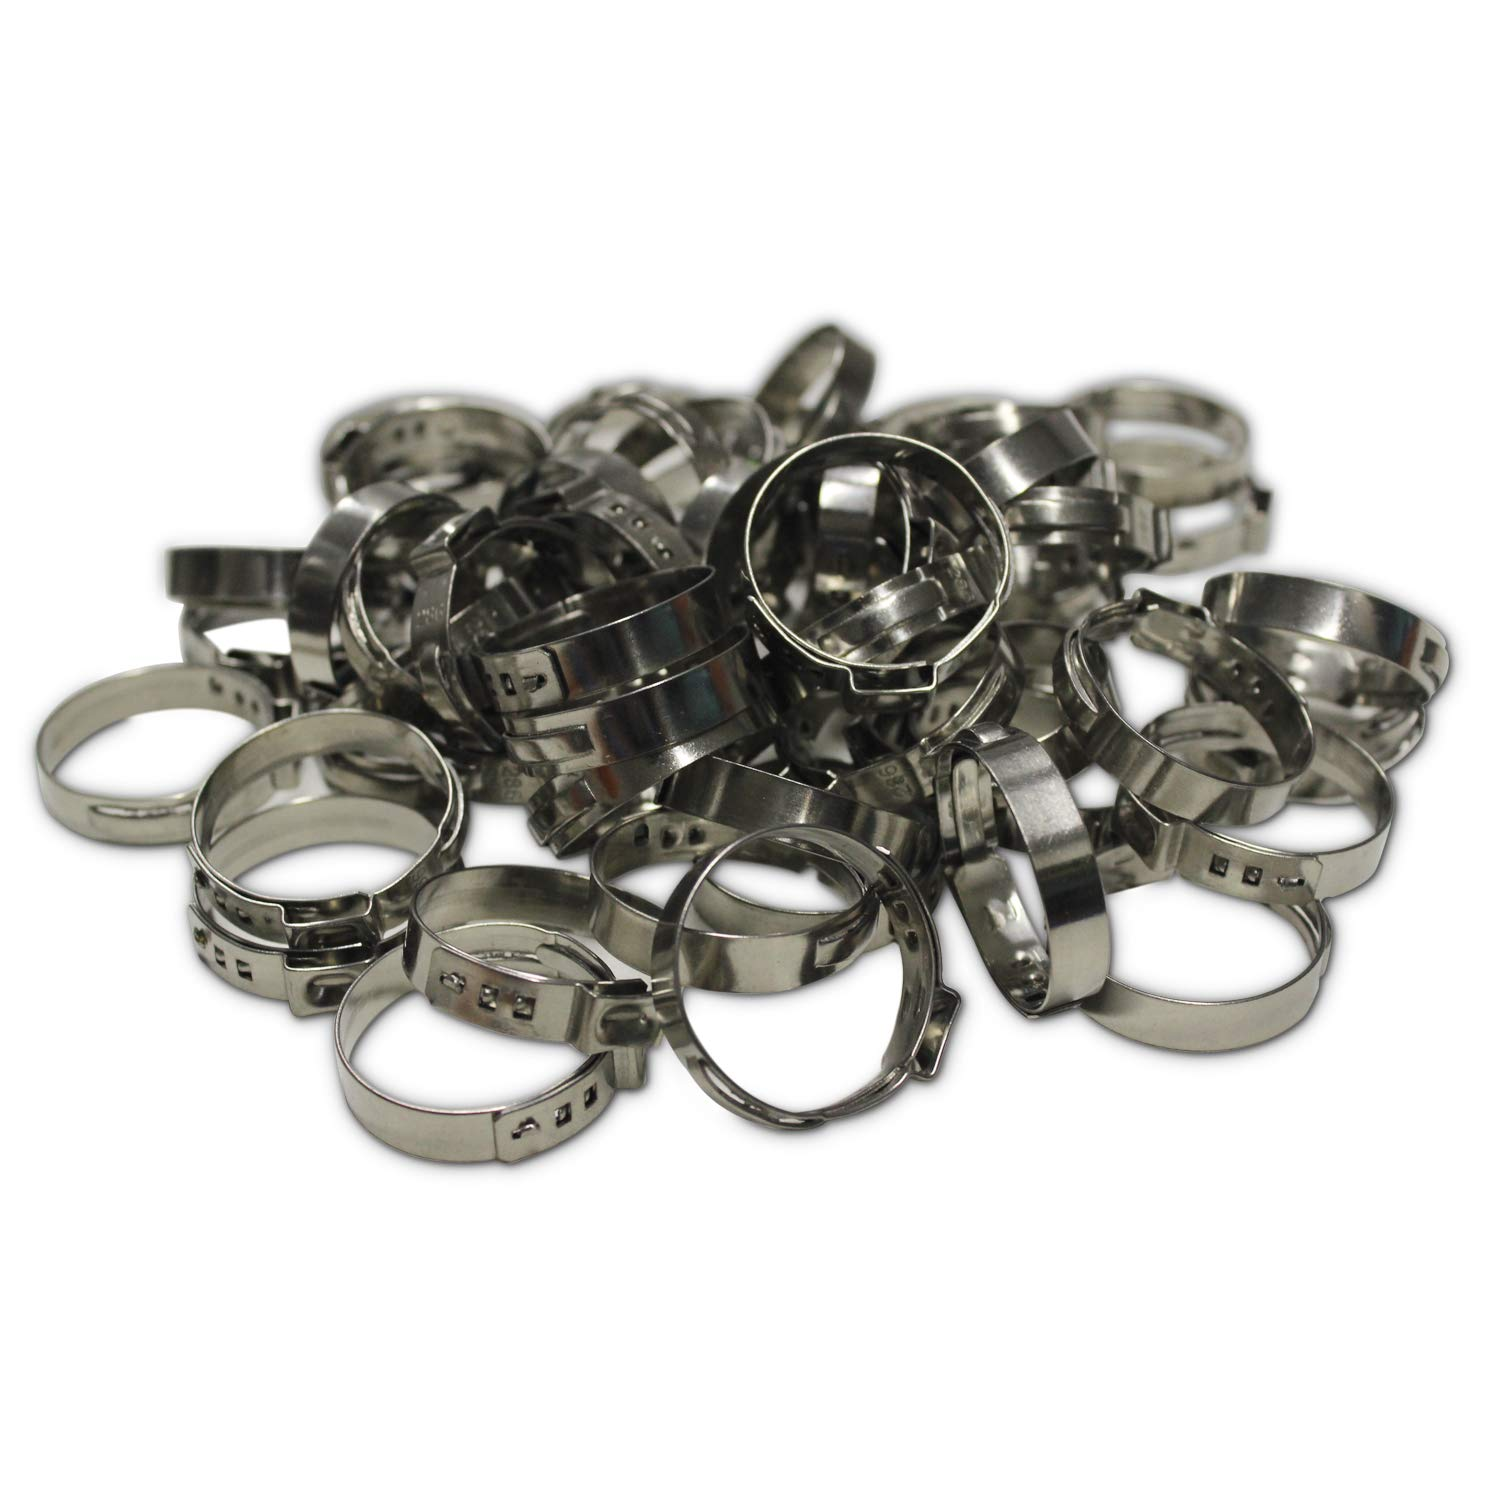 7.8-9.5mm WYKA 50 Pack 304 Stainless Steel Single Ear Hose Clamp,Crimp Pinch Fitting,Fuel Line Hose Clips Water Pipe Air Tube Silicone Vacuum Hose Clamp Fastener 5//16-3//8